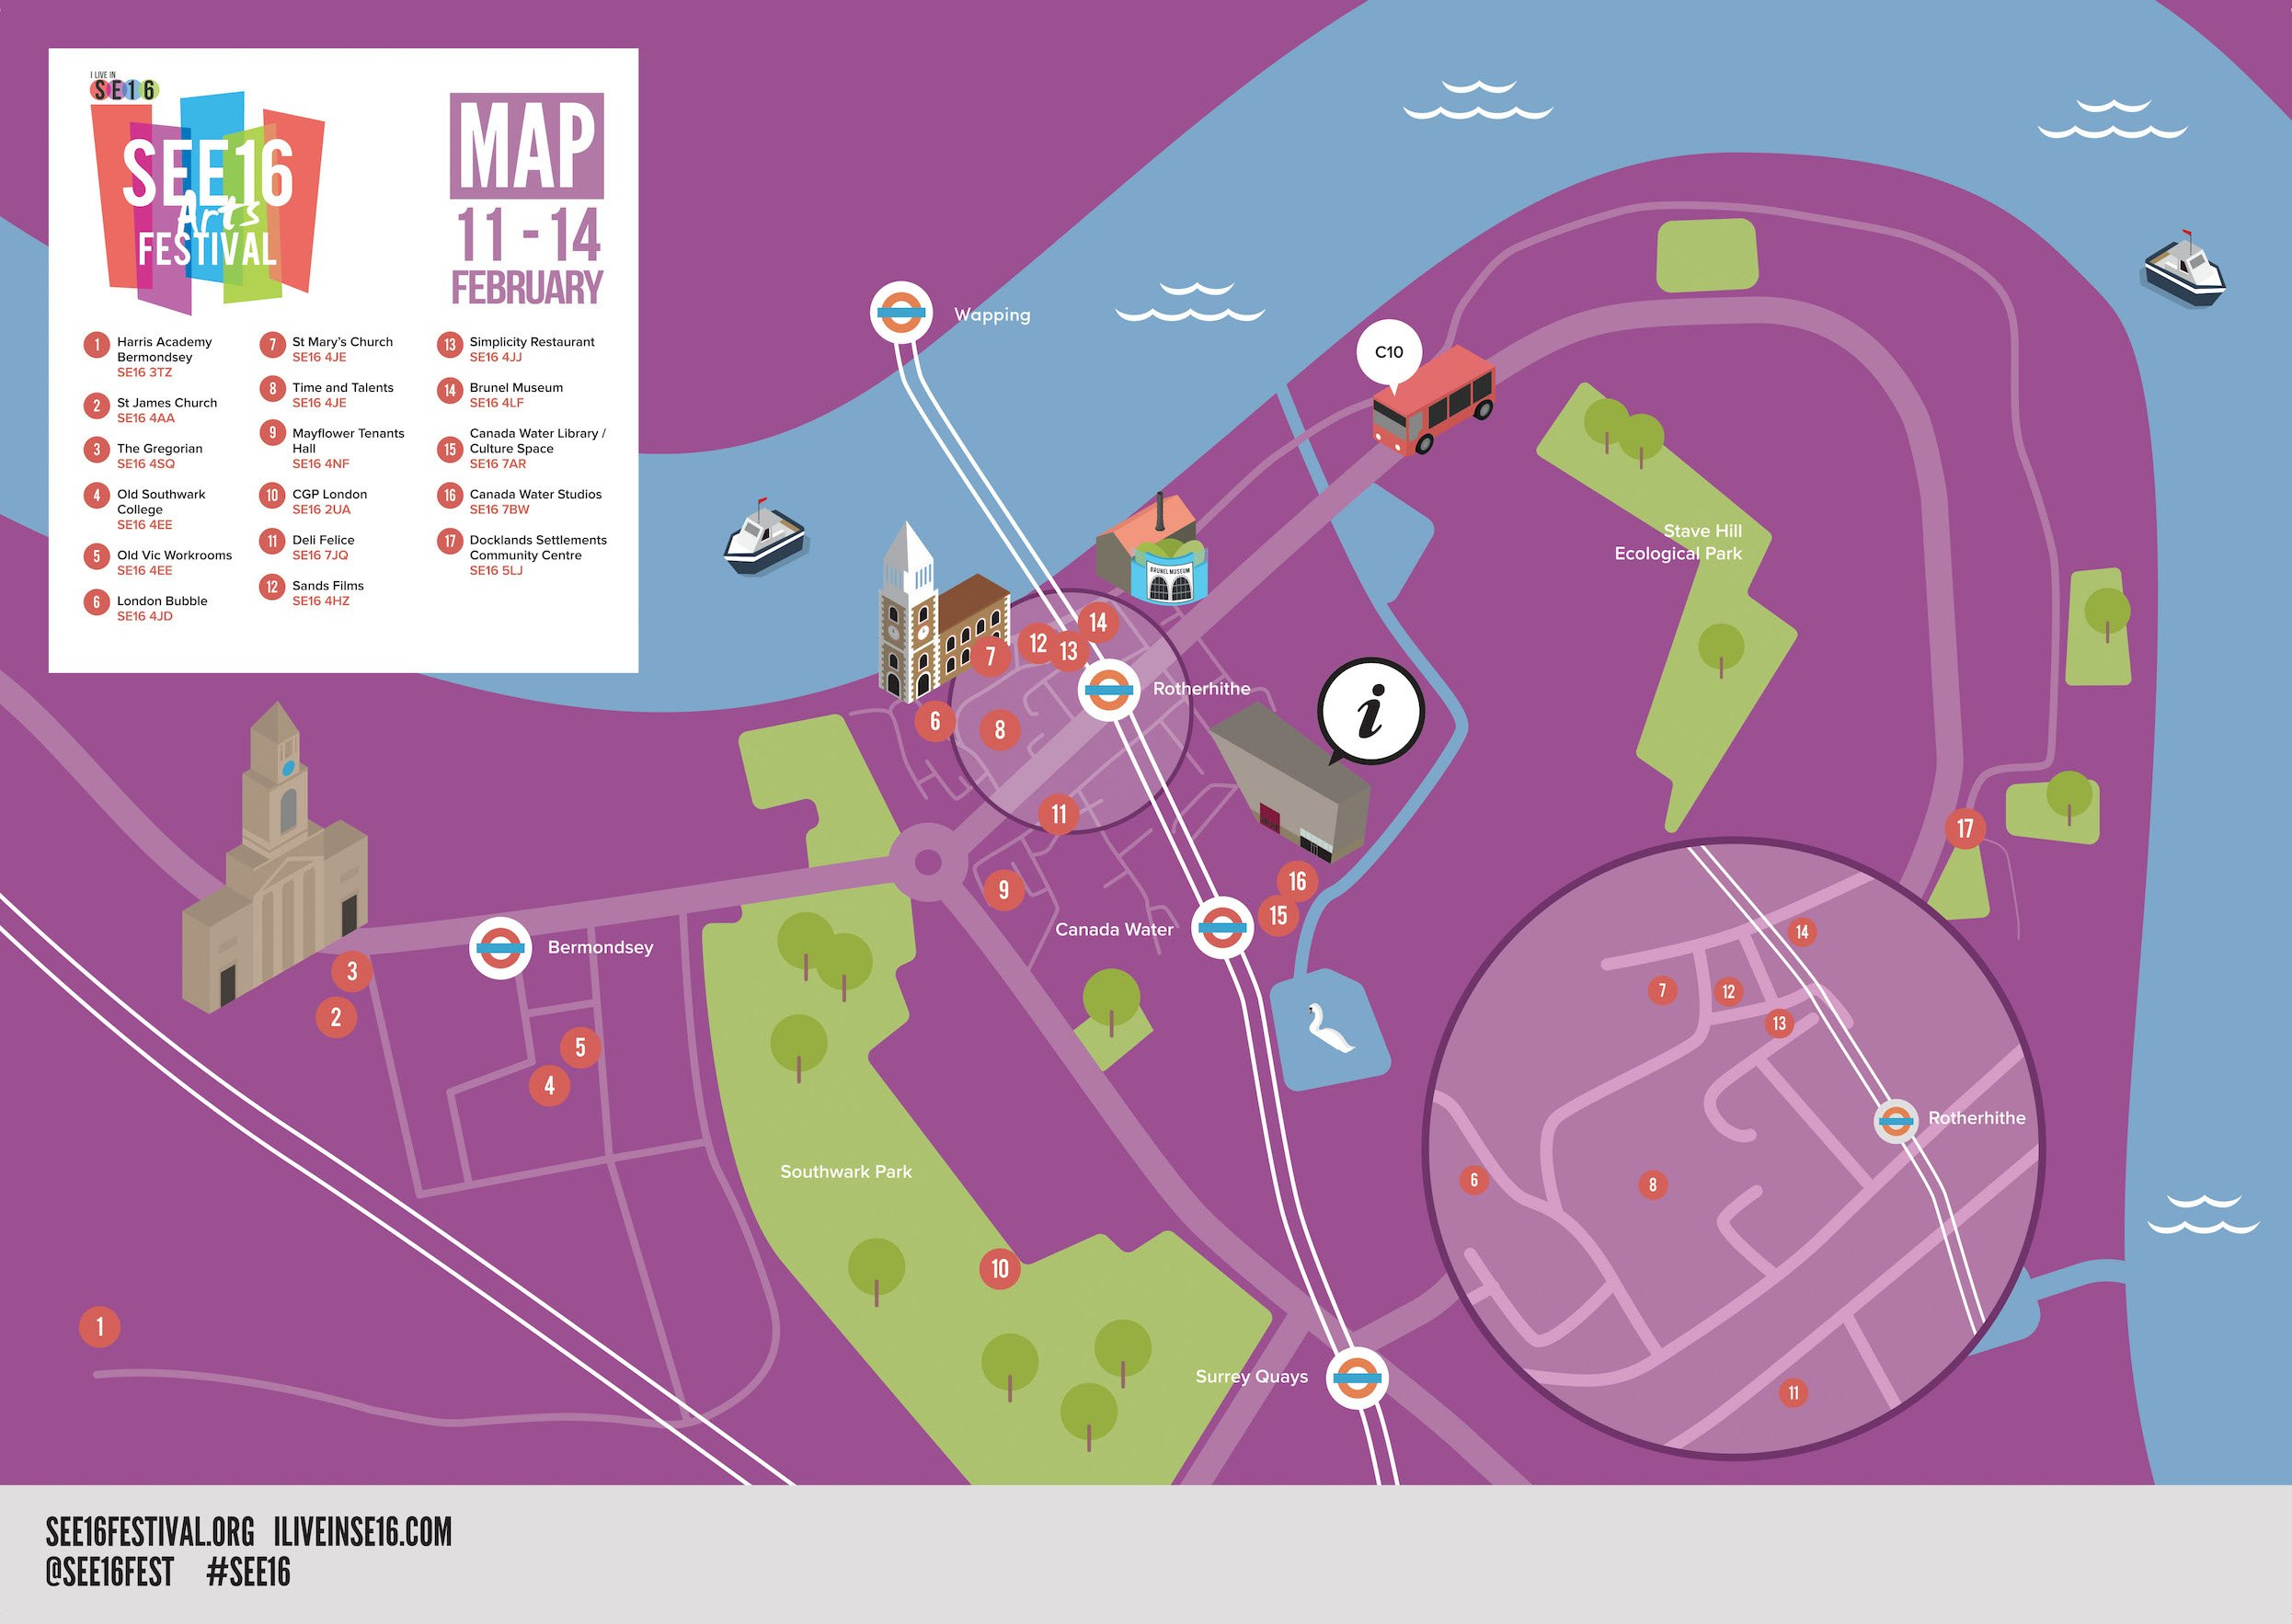 SEE16 Arts Festival Map